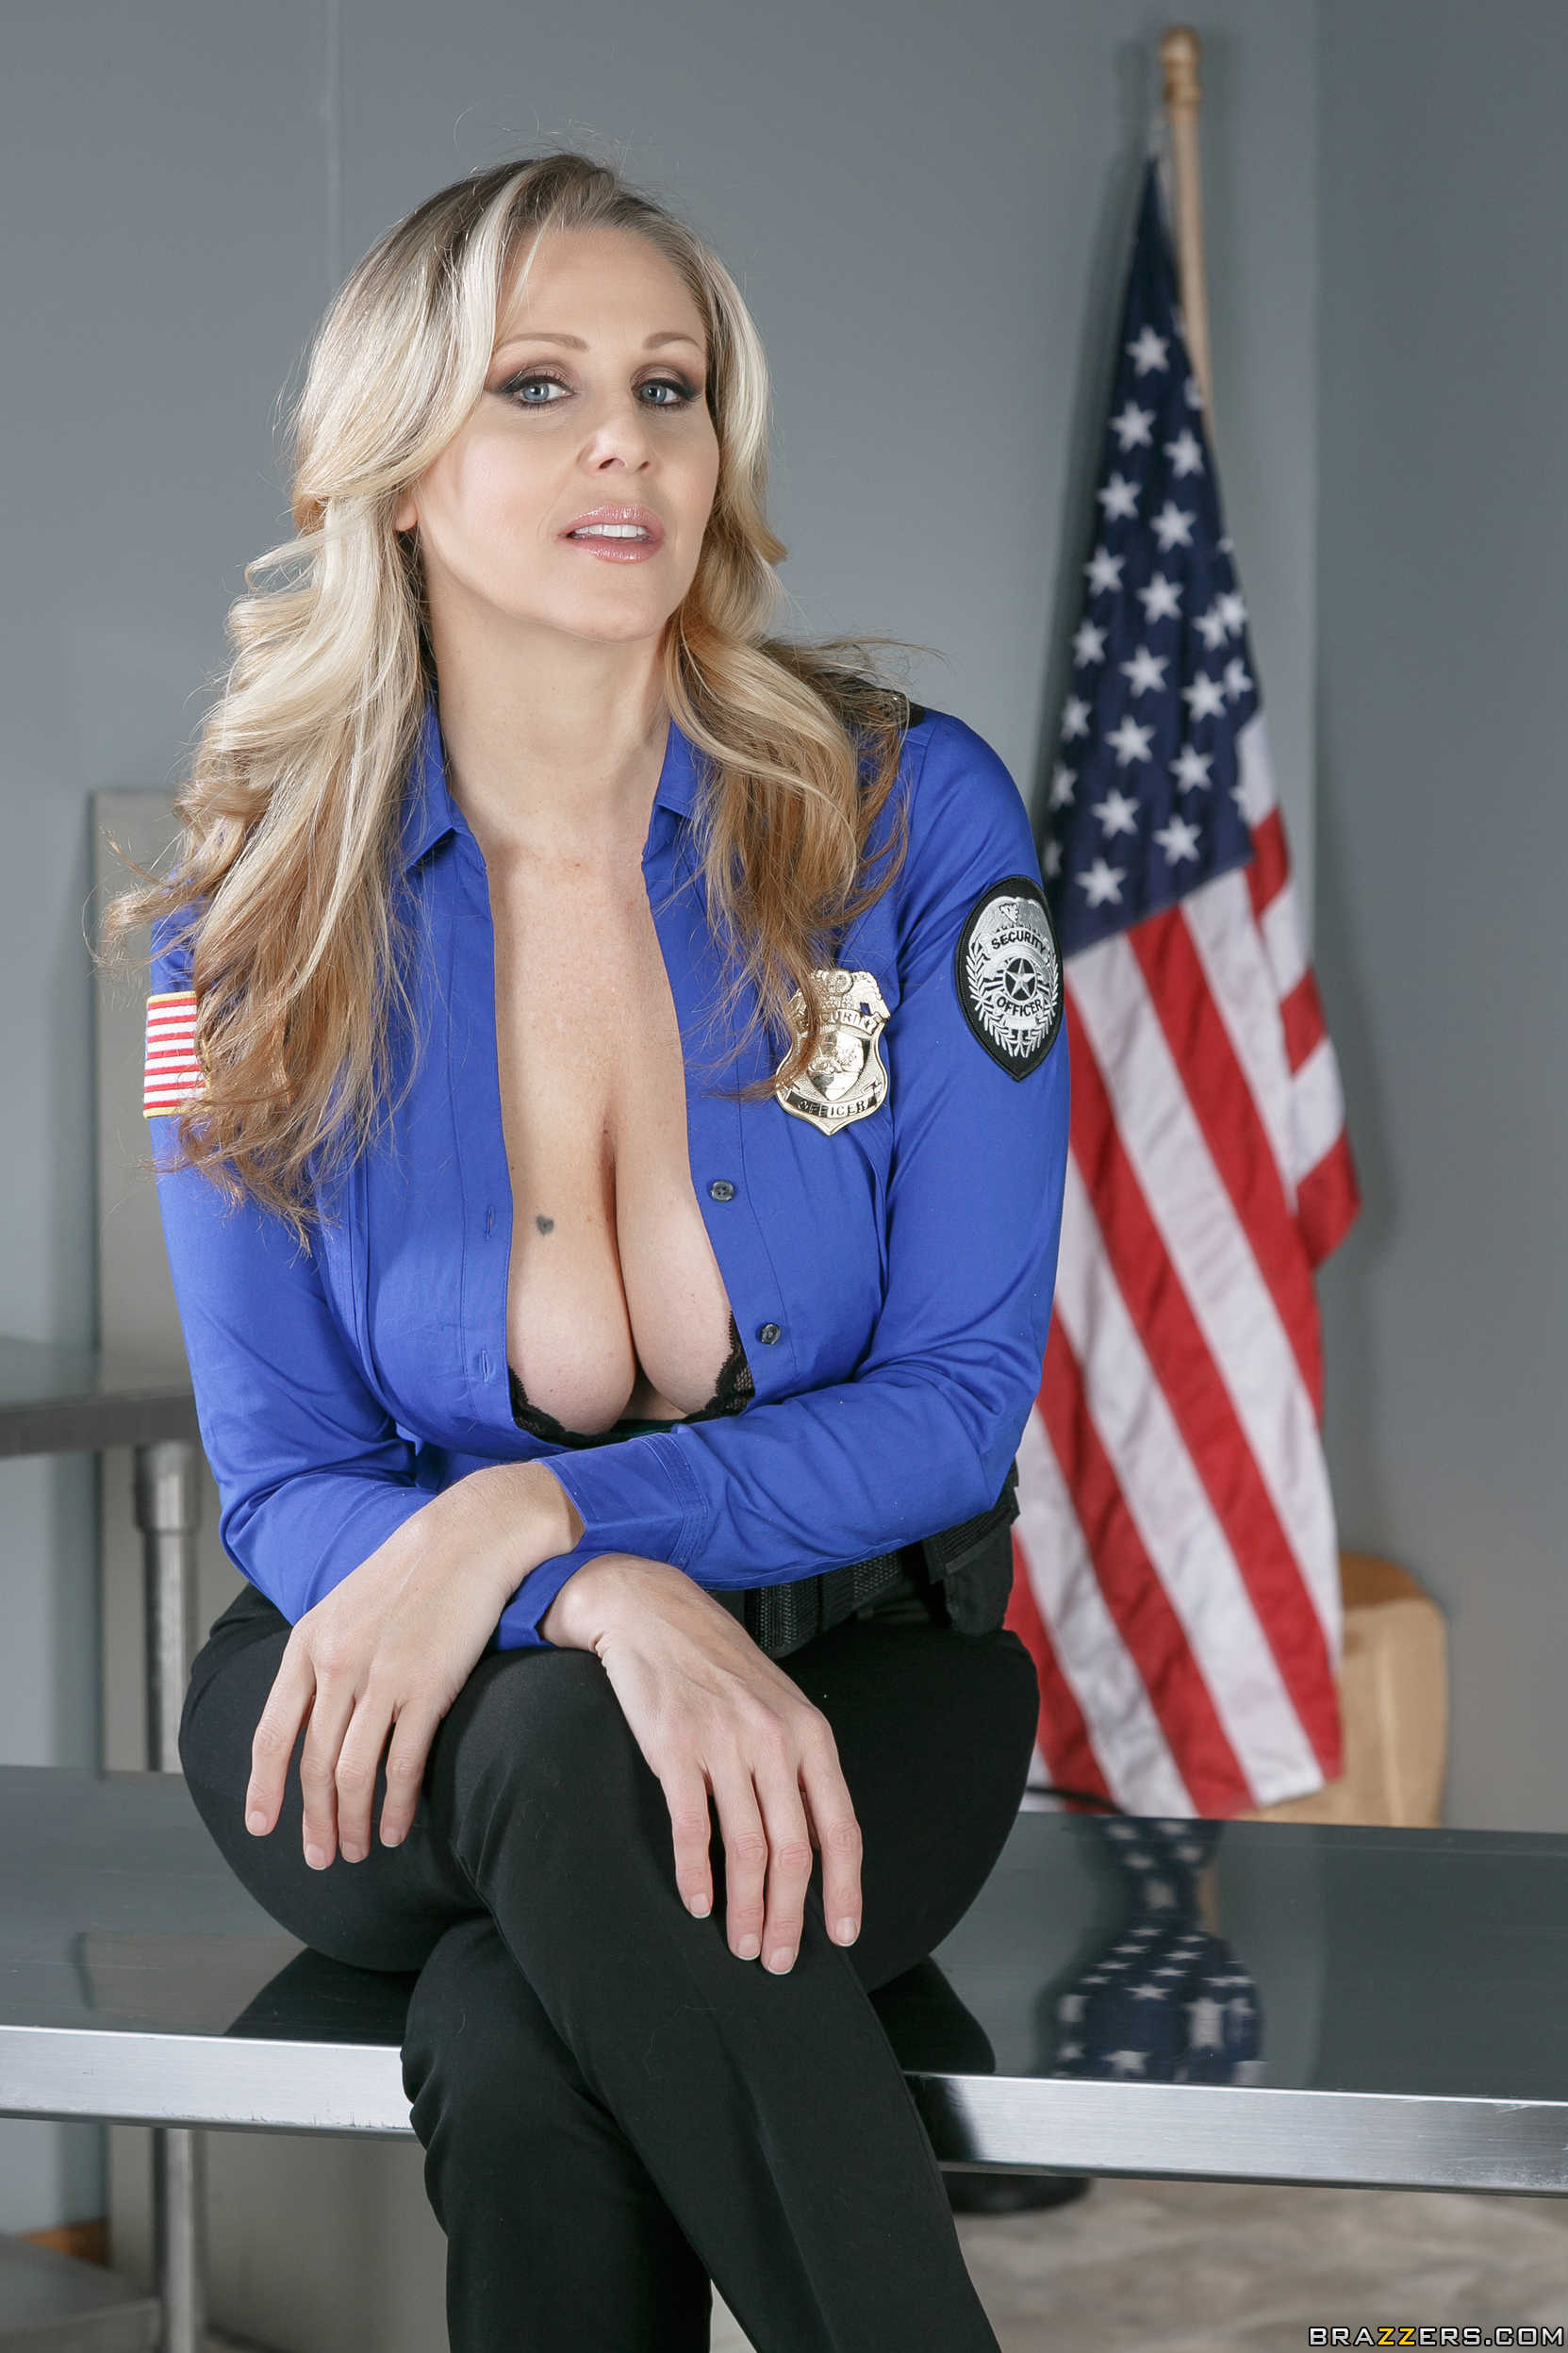 Female mature police officer loves getting off 6